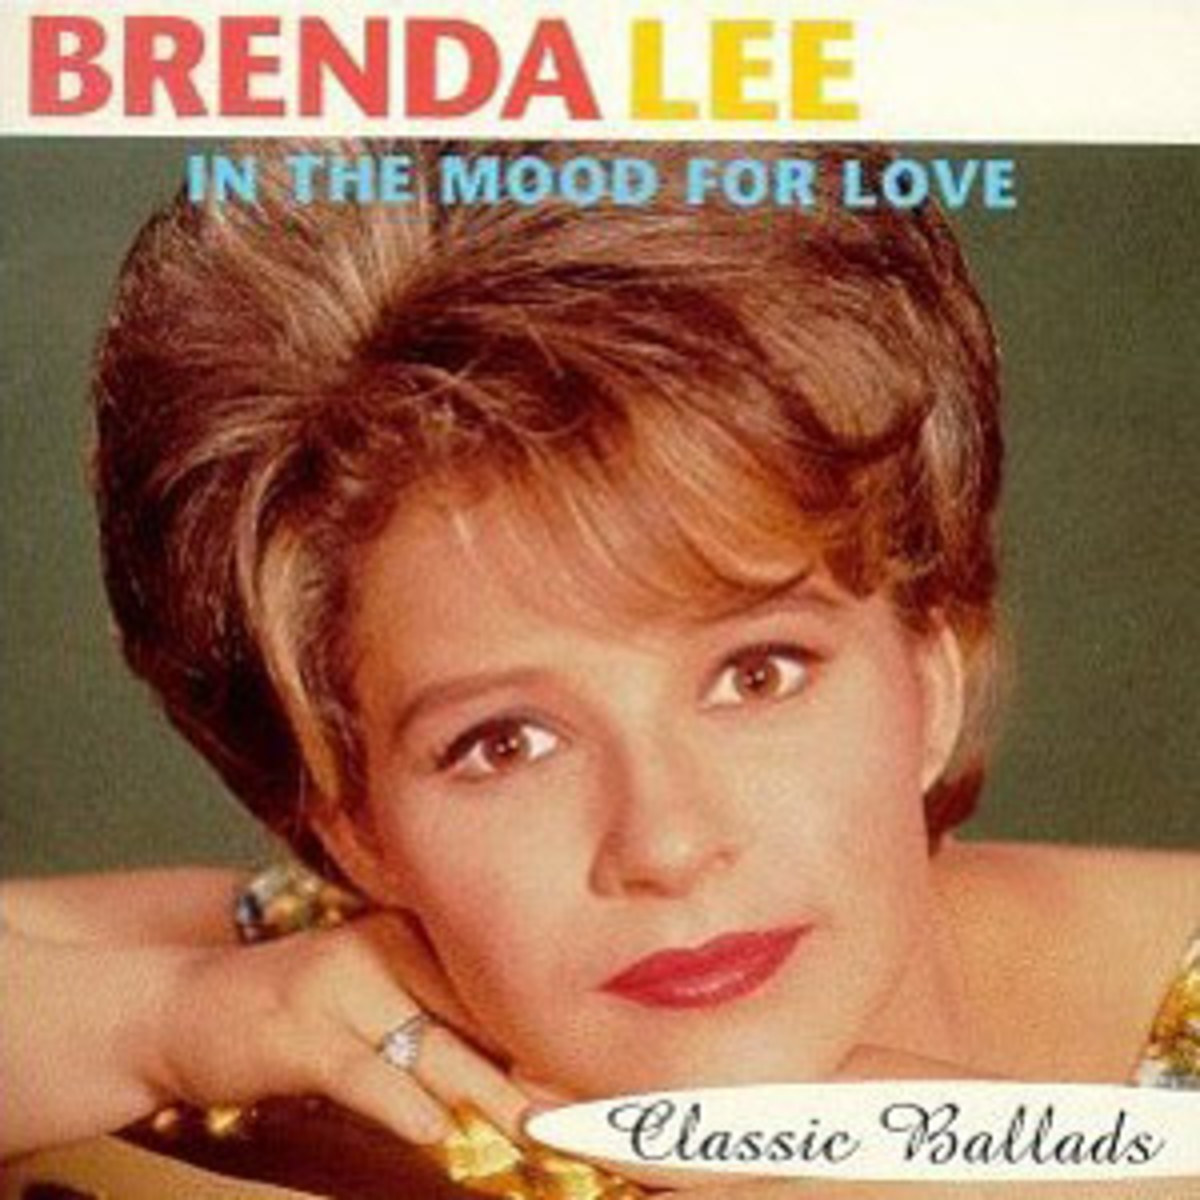 Brenda Lee -1972 Single